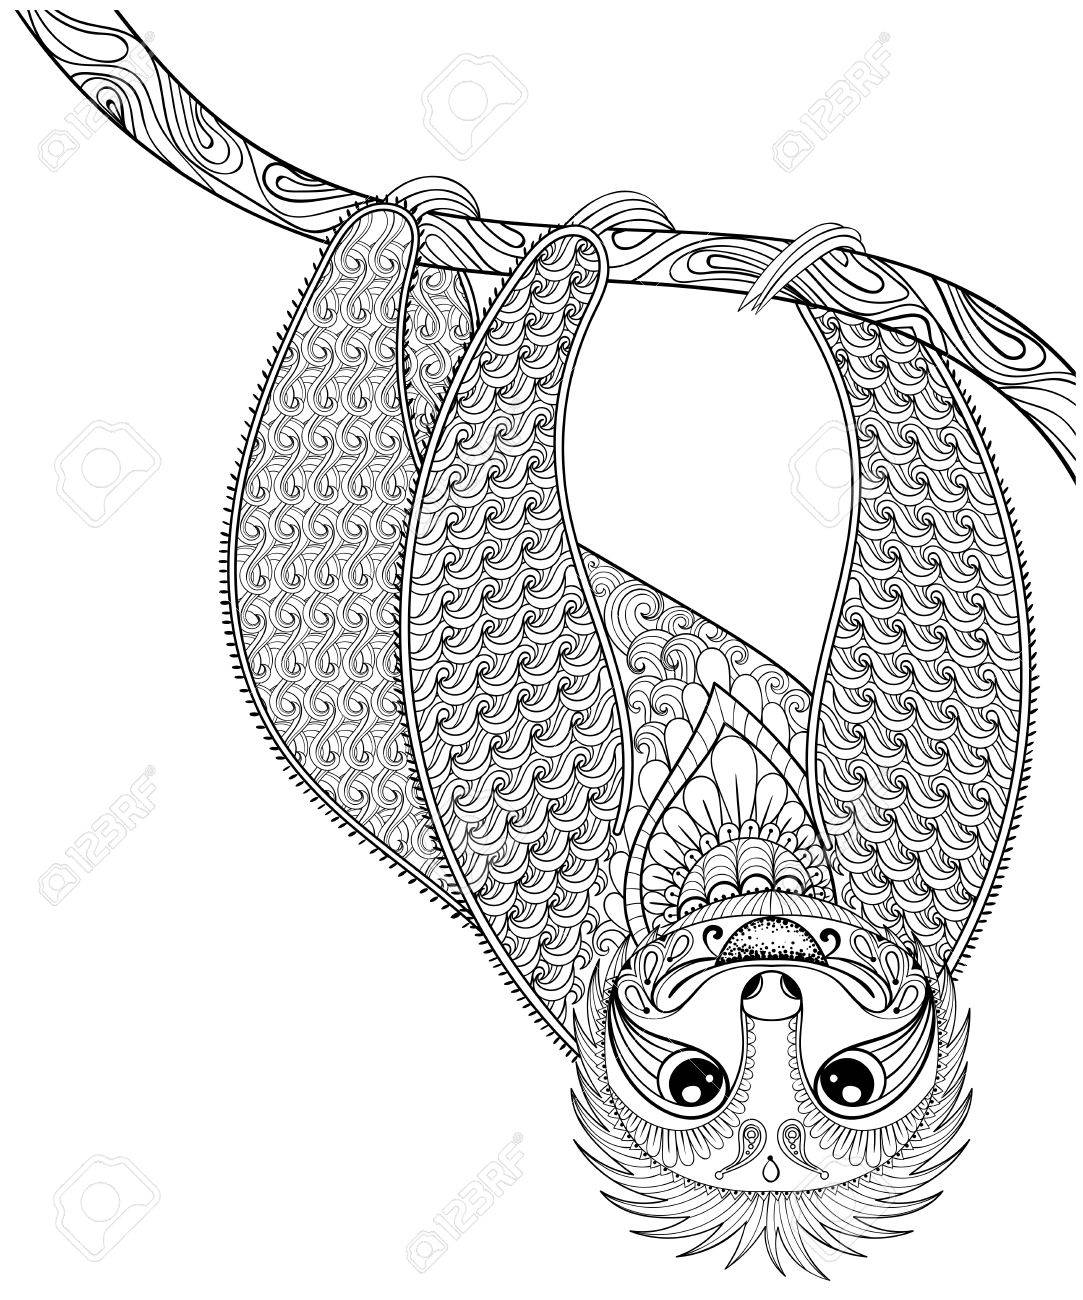 Vector Zentangle Sloth Print For Adult Coloring Page Hand Drawn